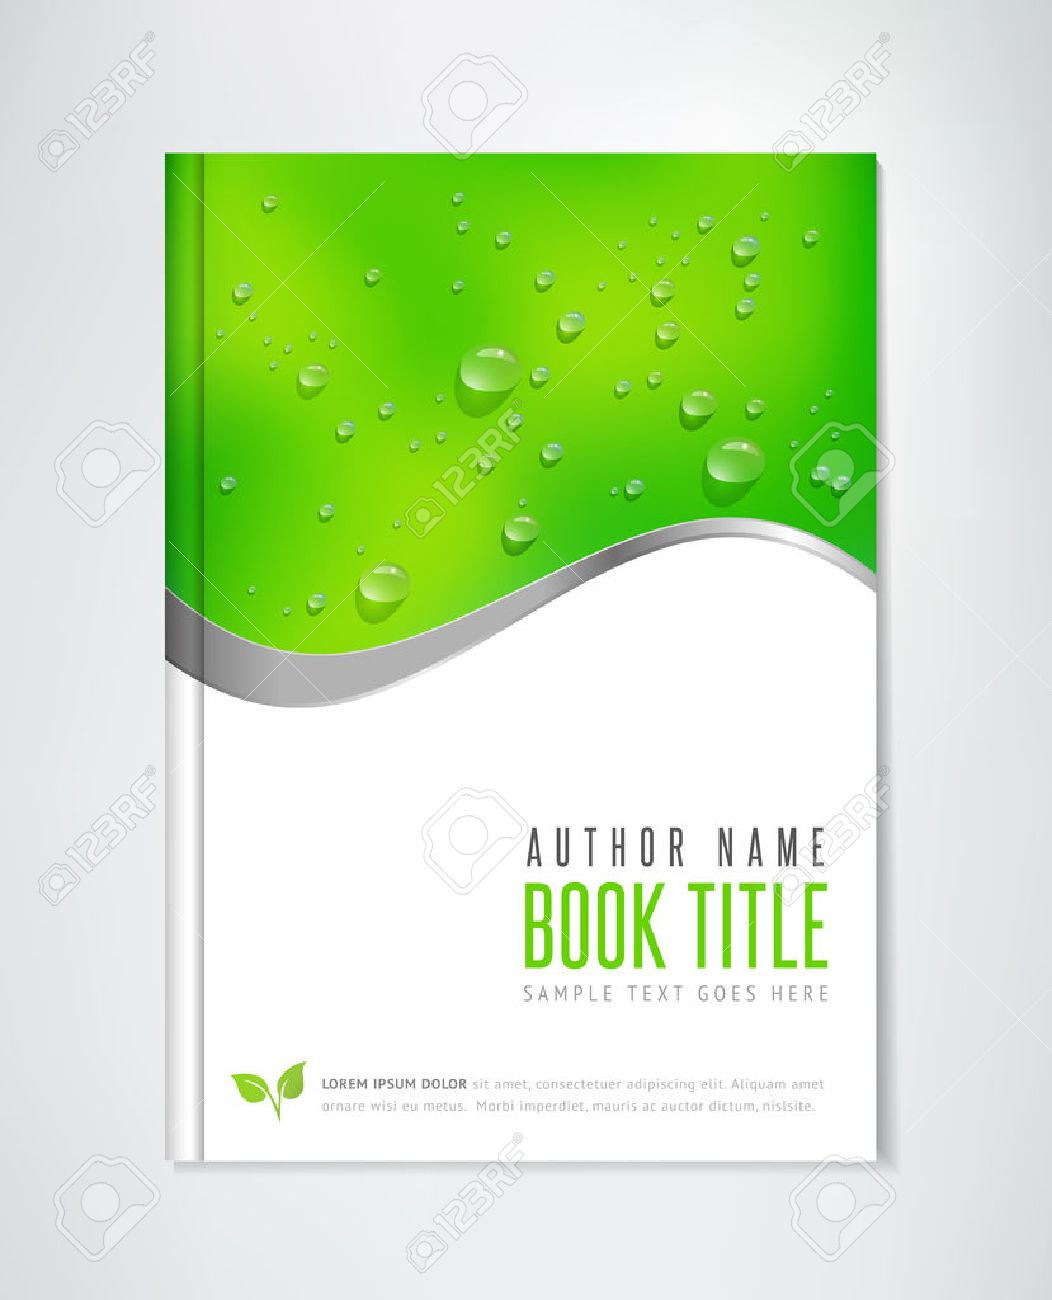 Brochure Design   Vector Template  Can Be Used For Ecological     Brochure Design   vector template  Can be used for ecological themes   organic agriculture